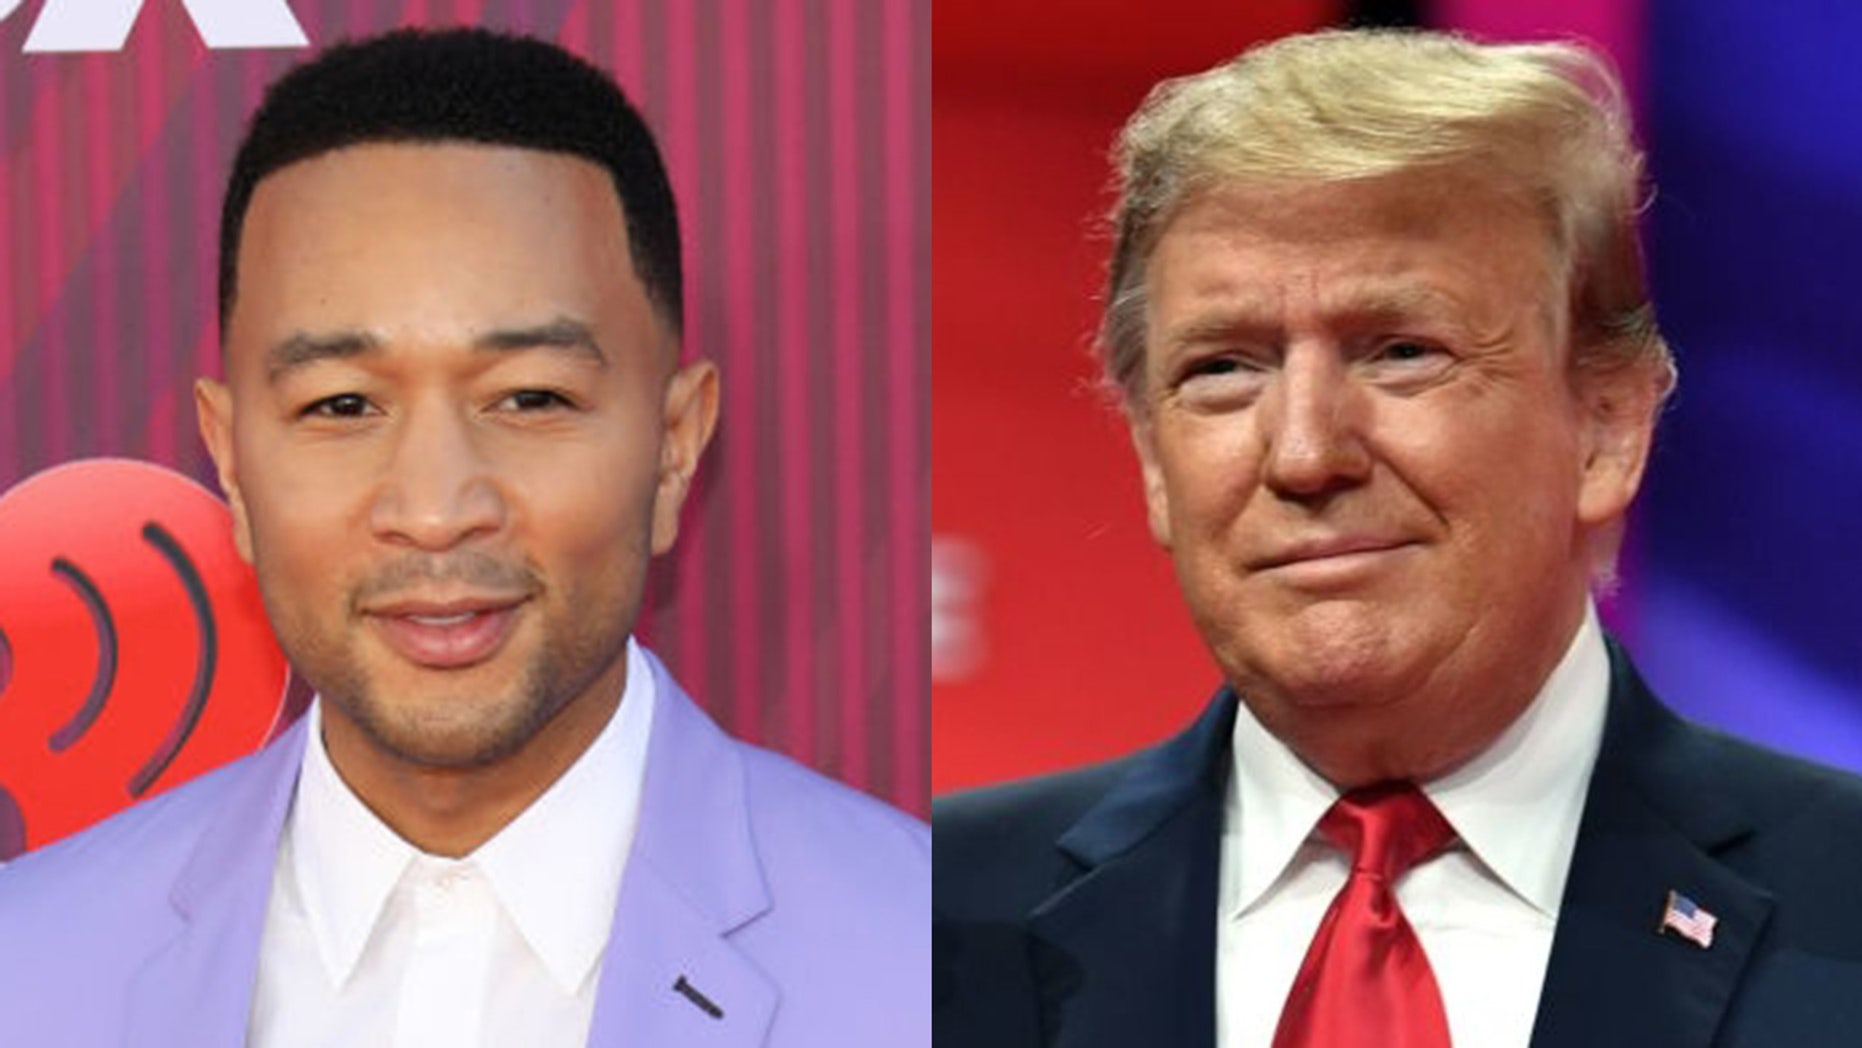 """John Legend saidthat President Trump """"needs to apologize for demonizing Muslims"""" after 50 people were killed at mosque shootings in New Zealand."""